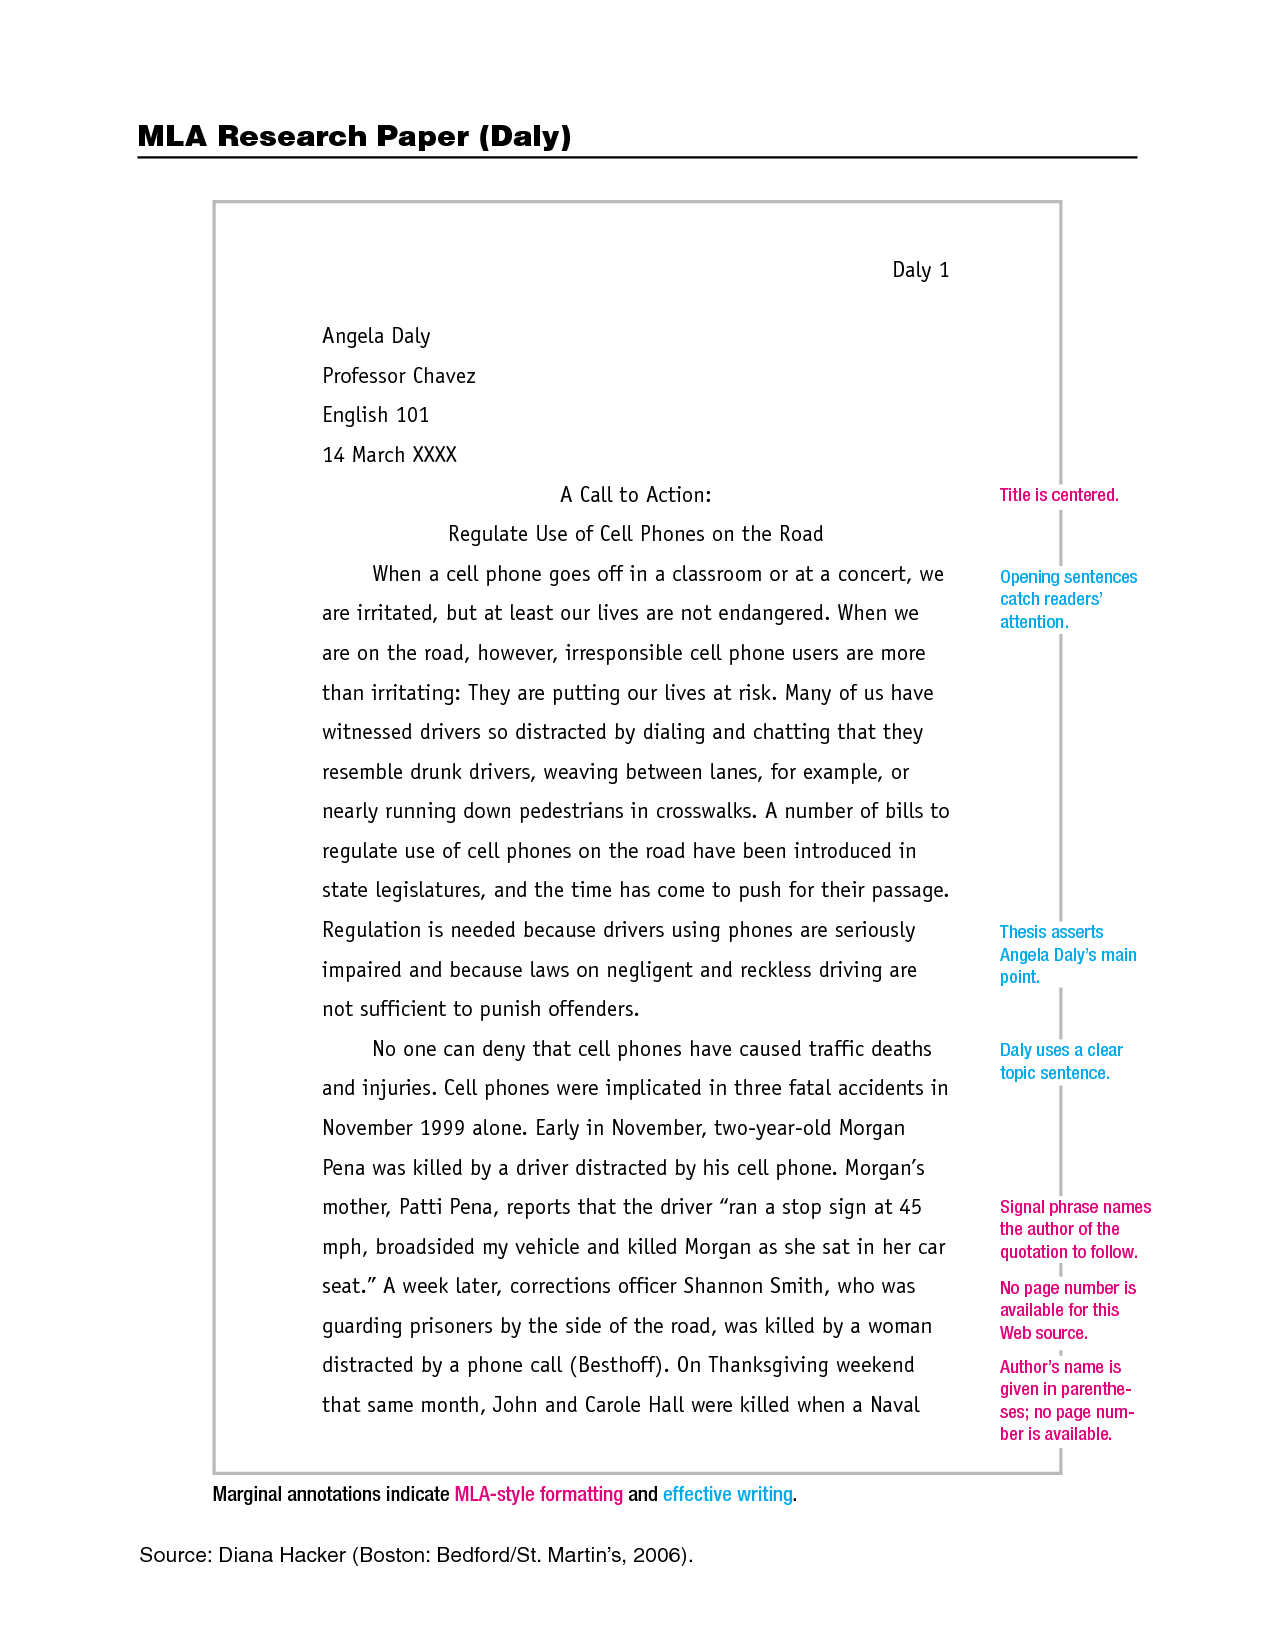 mla essay format for quotes Click here click here click here click here click here if you need high-quality papers done quickly and with zero traces of plagiarism, papercoach is the.